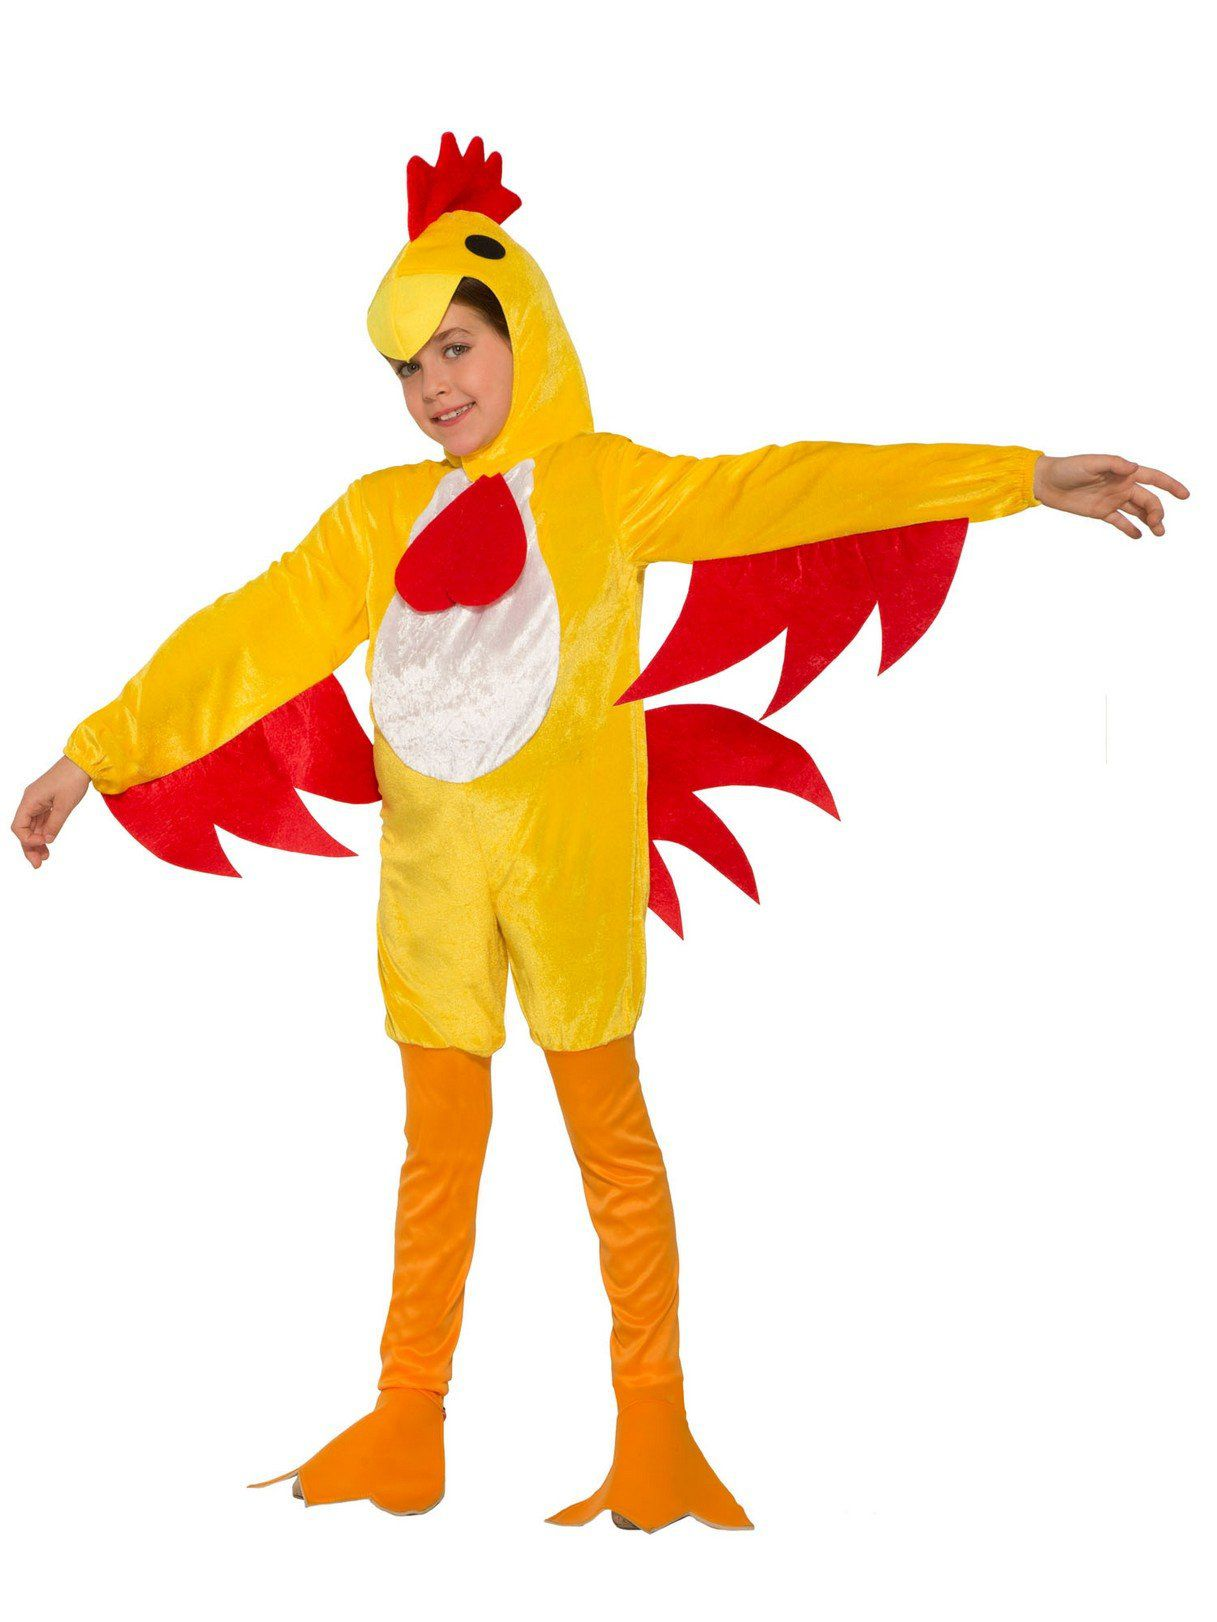 Clucky The Chicken Kid s Costume - Boys Costumes for 2018 ... b5fcc542ab8